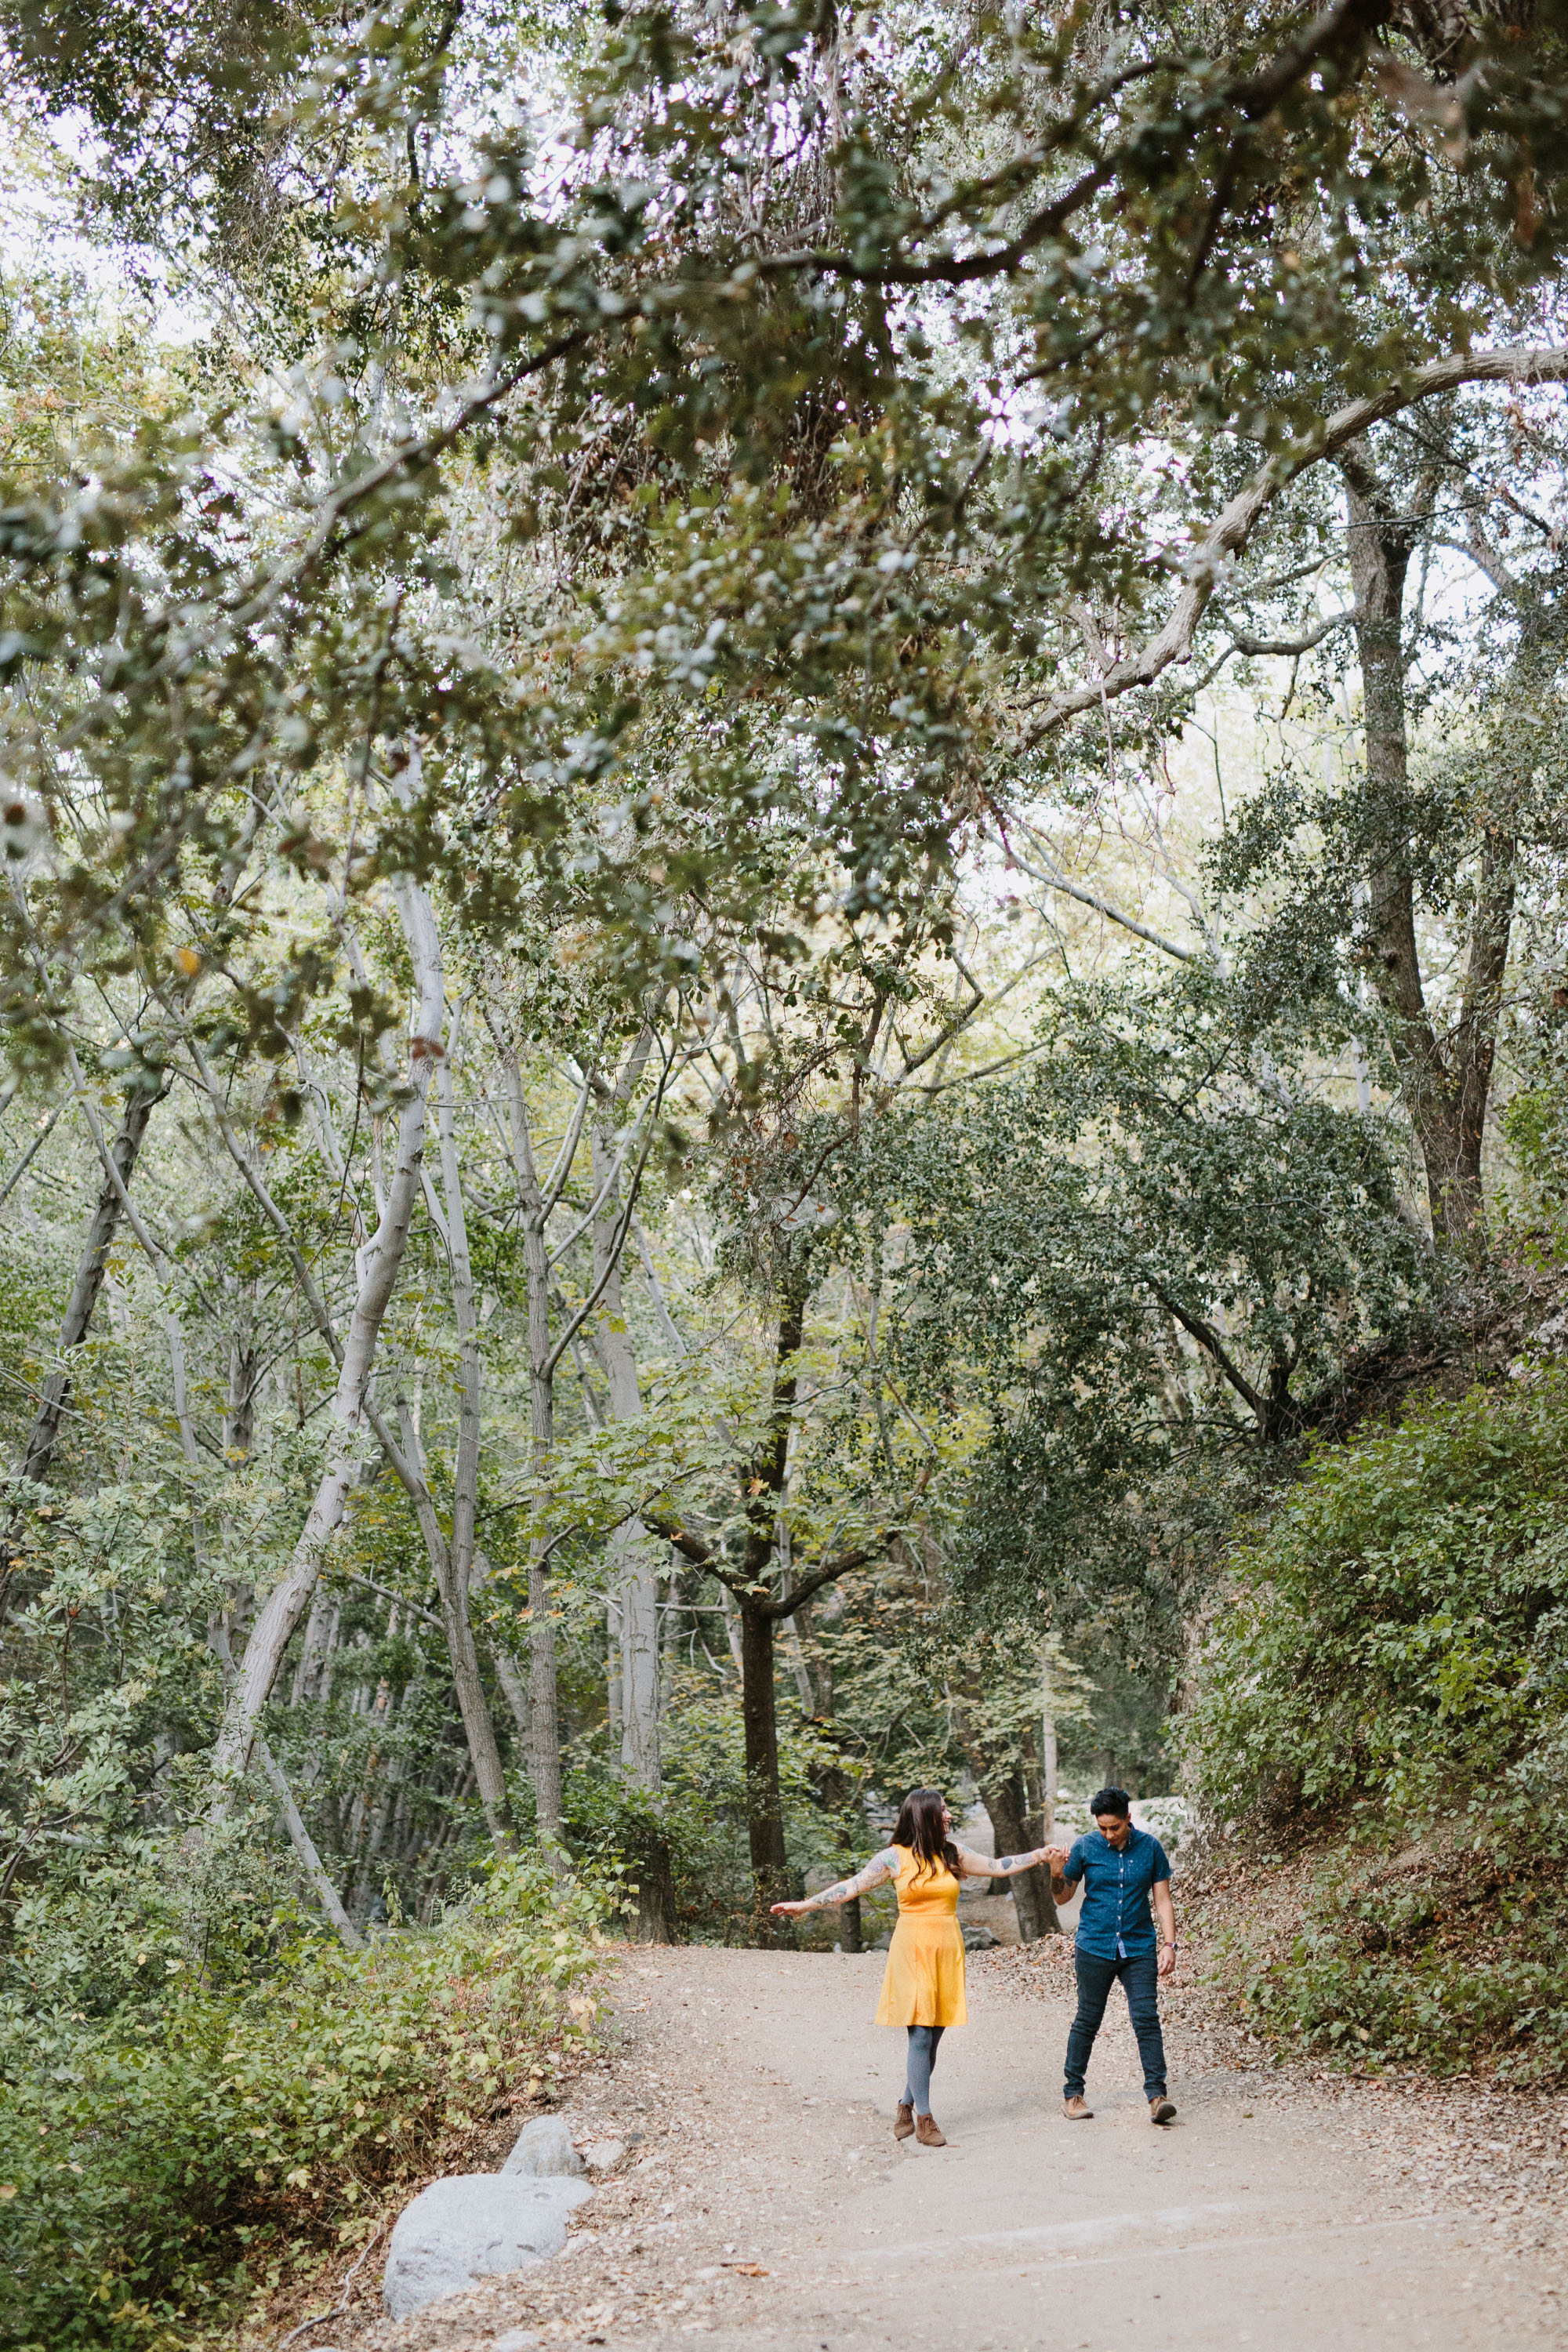 www-marycostaphotography-com-angeles-national-forest-engagement-0020